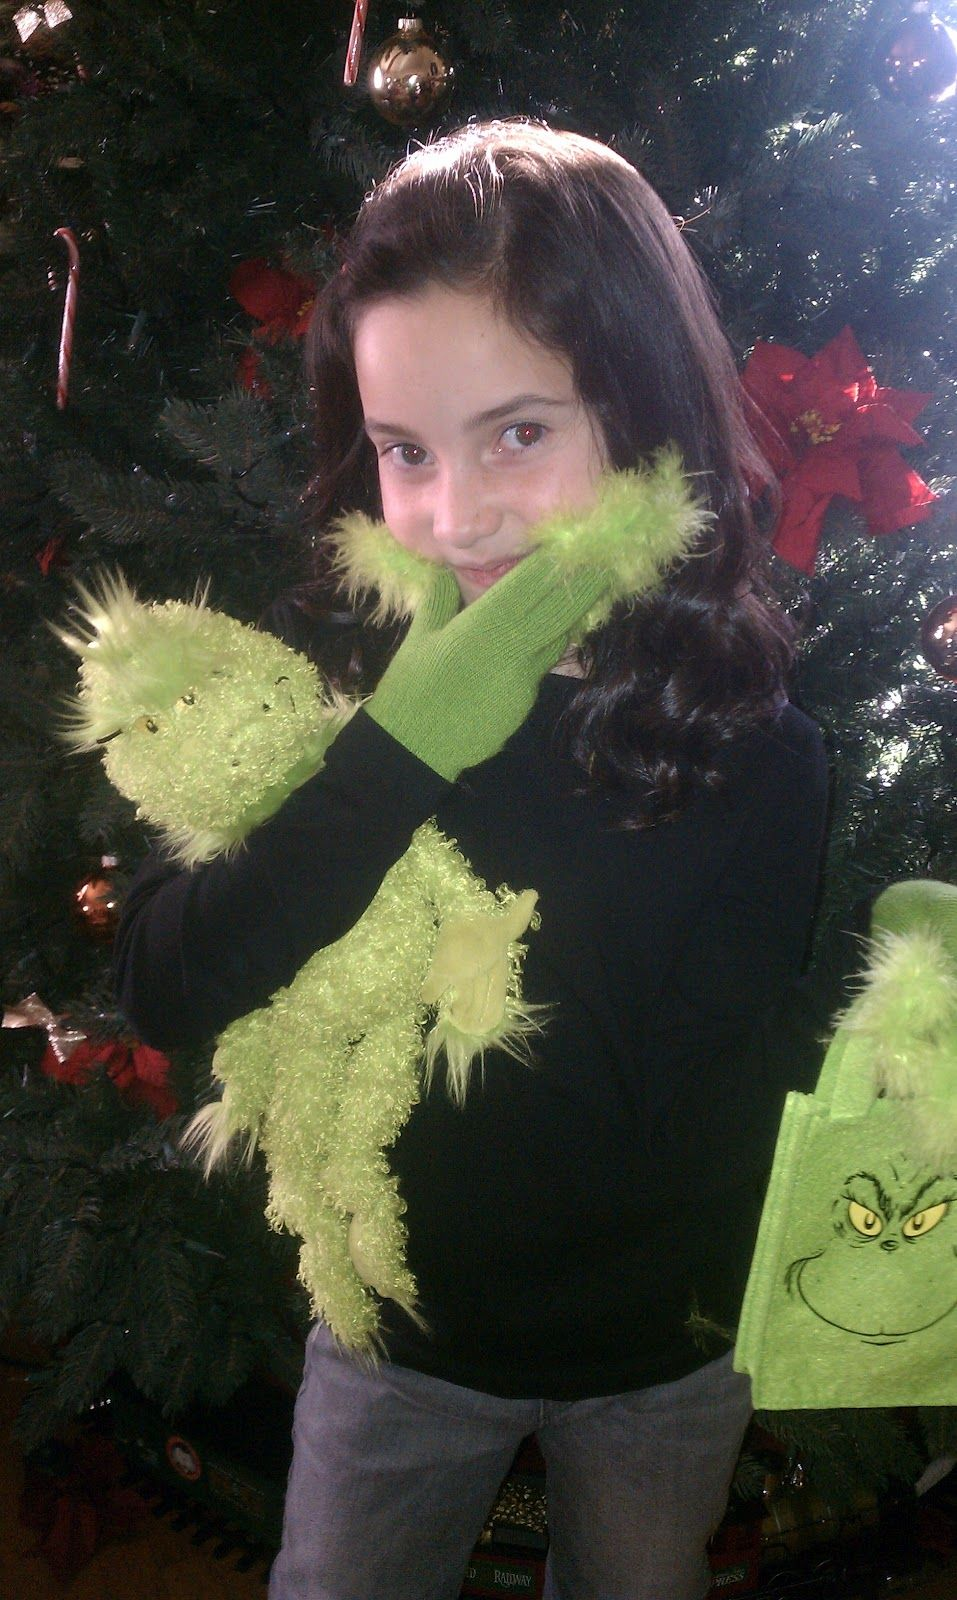 How to make your own grinch costume - Grinch Gloves These Gloves Are Super Easy To Make You Need 1 Pair Of Green Gloves Green Marabou Needle And Thread